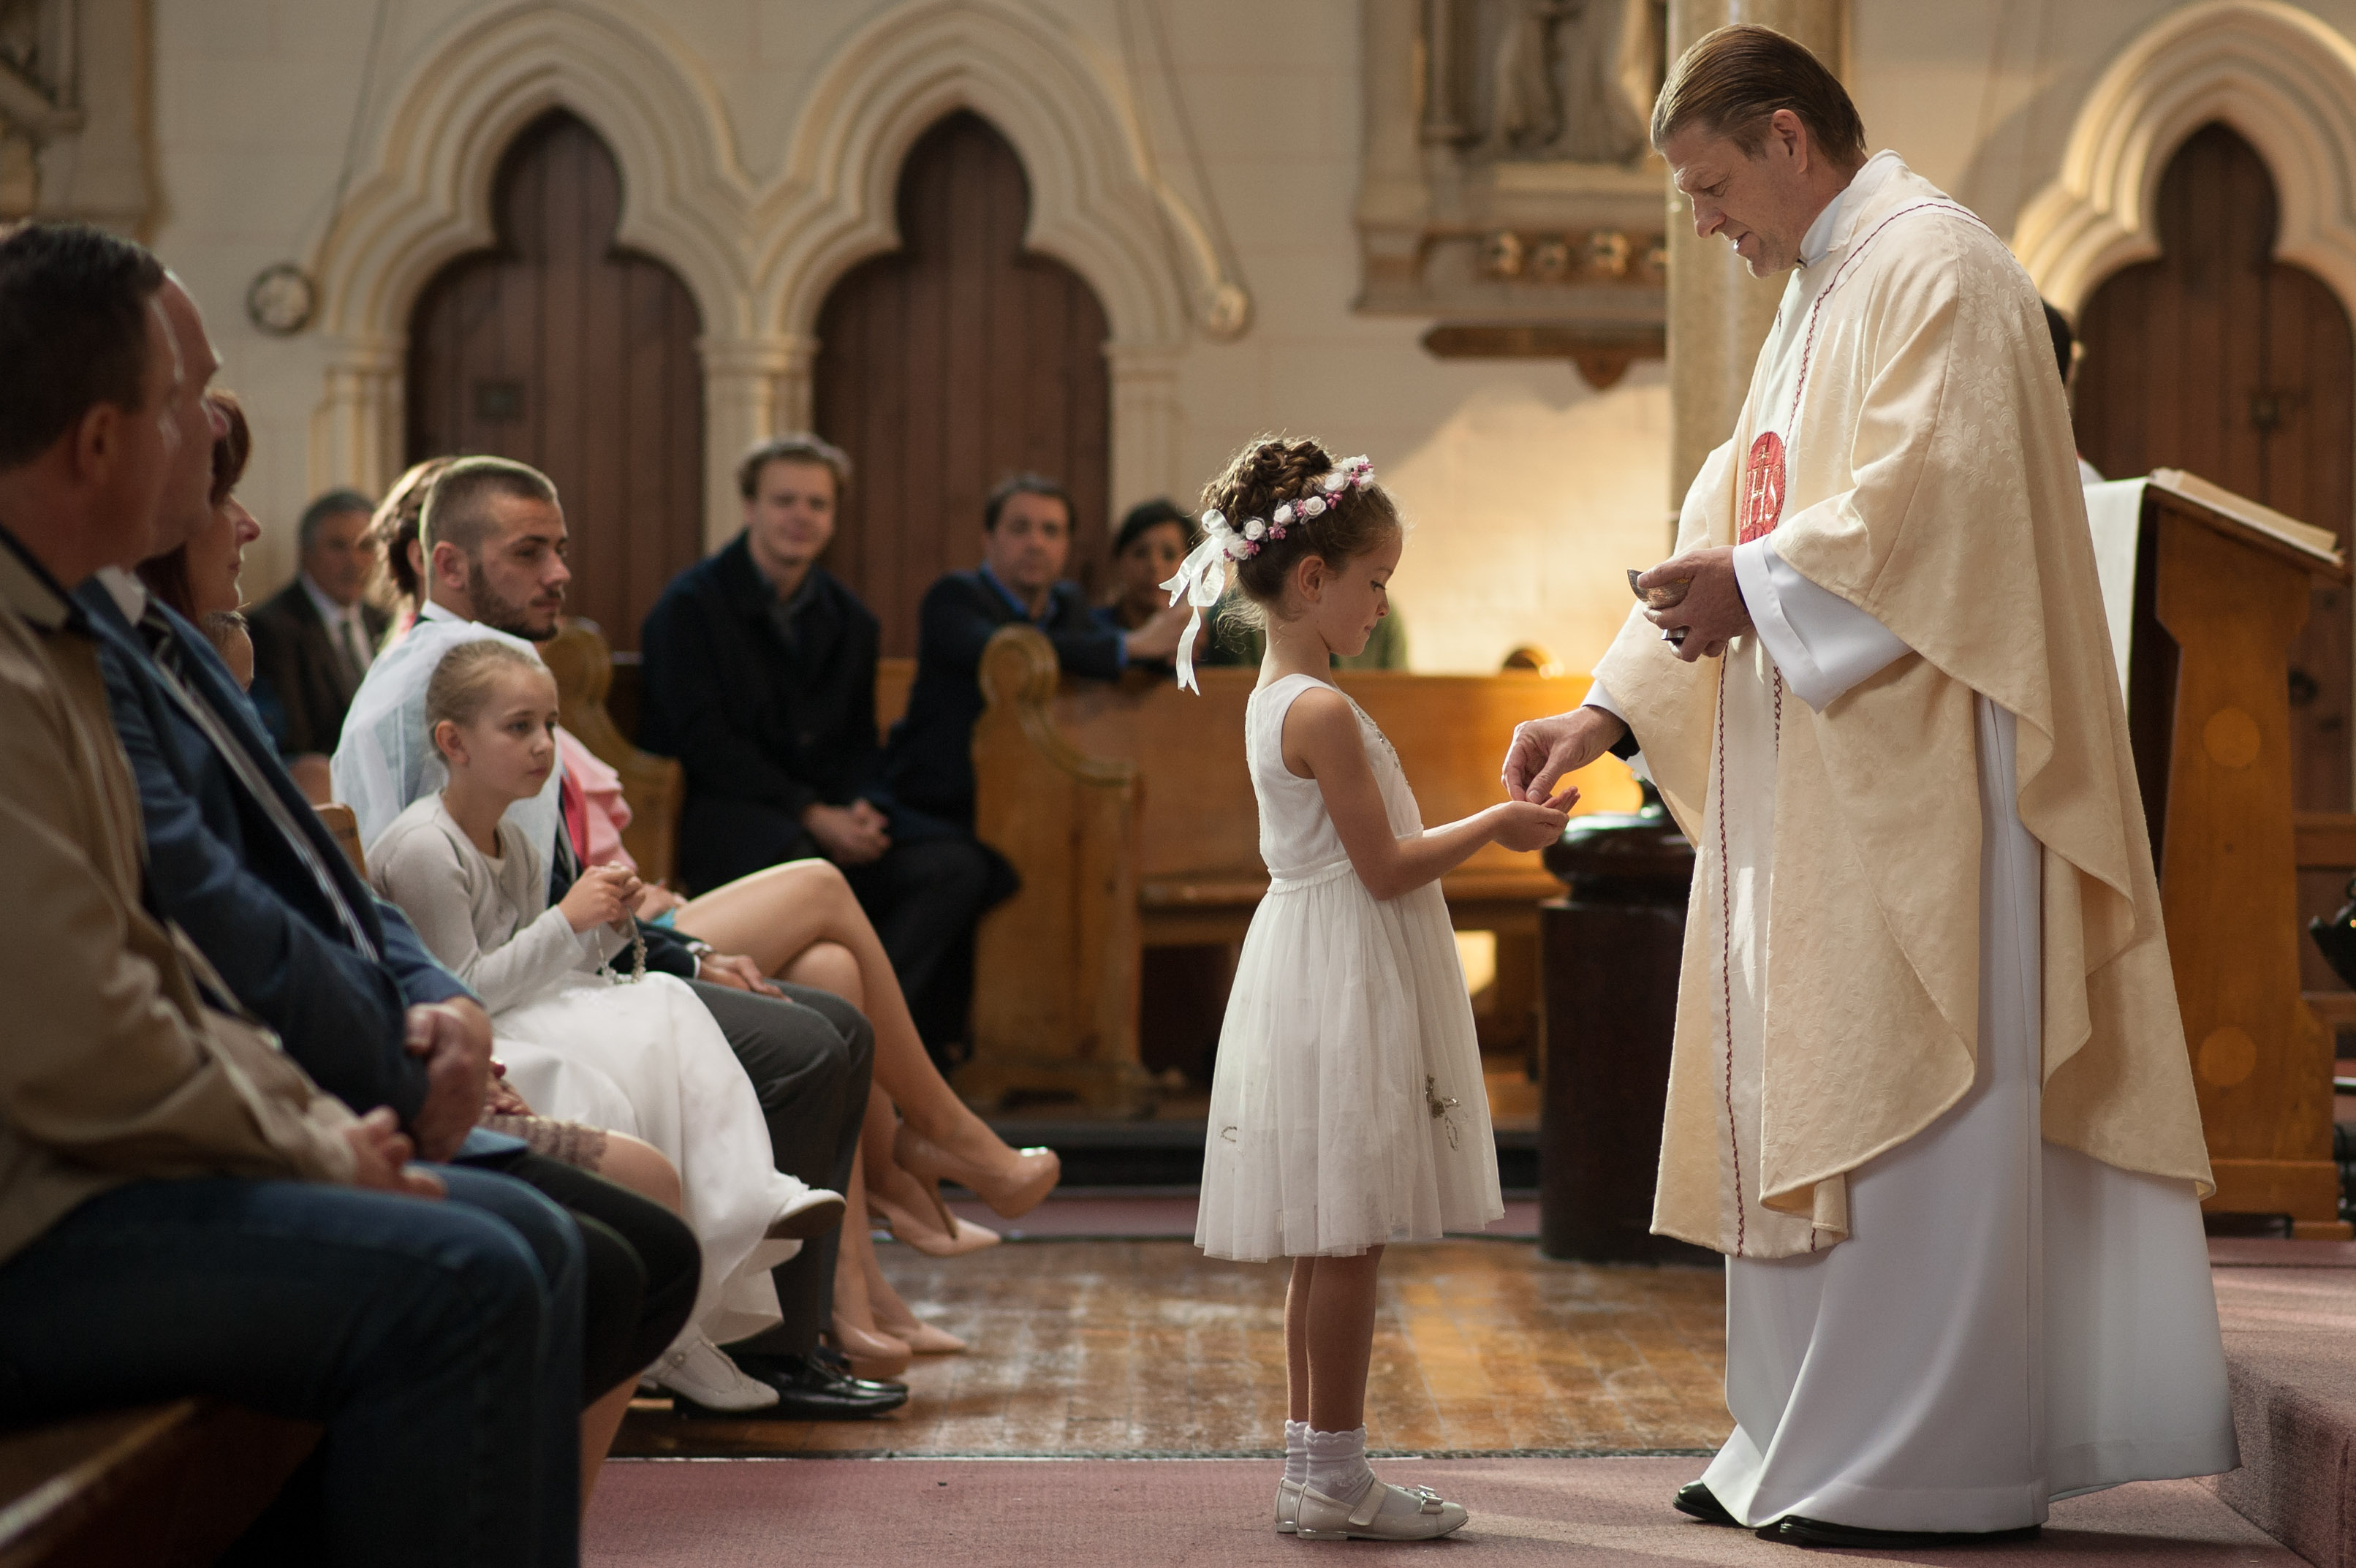 The First Communion Mass involved over 200 extras, including 40 children.